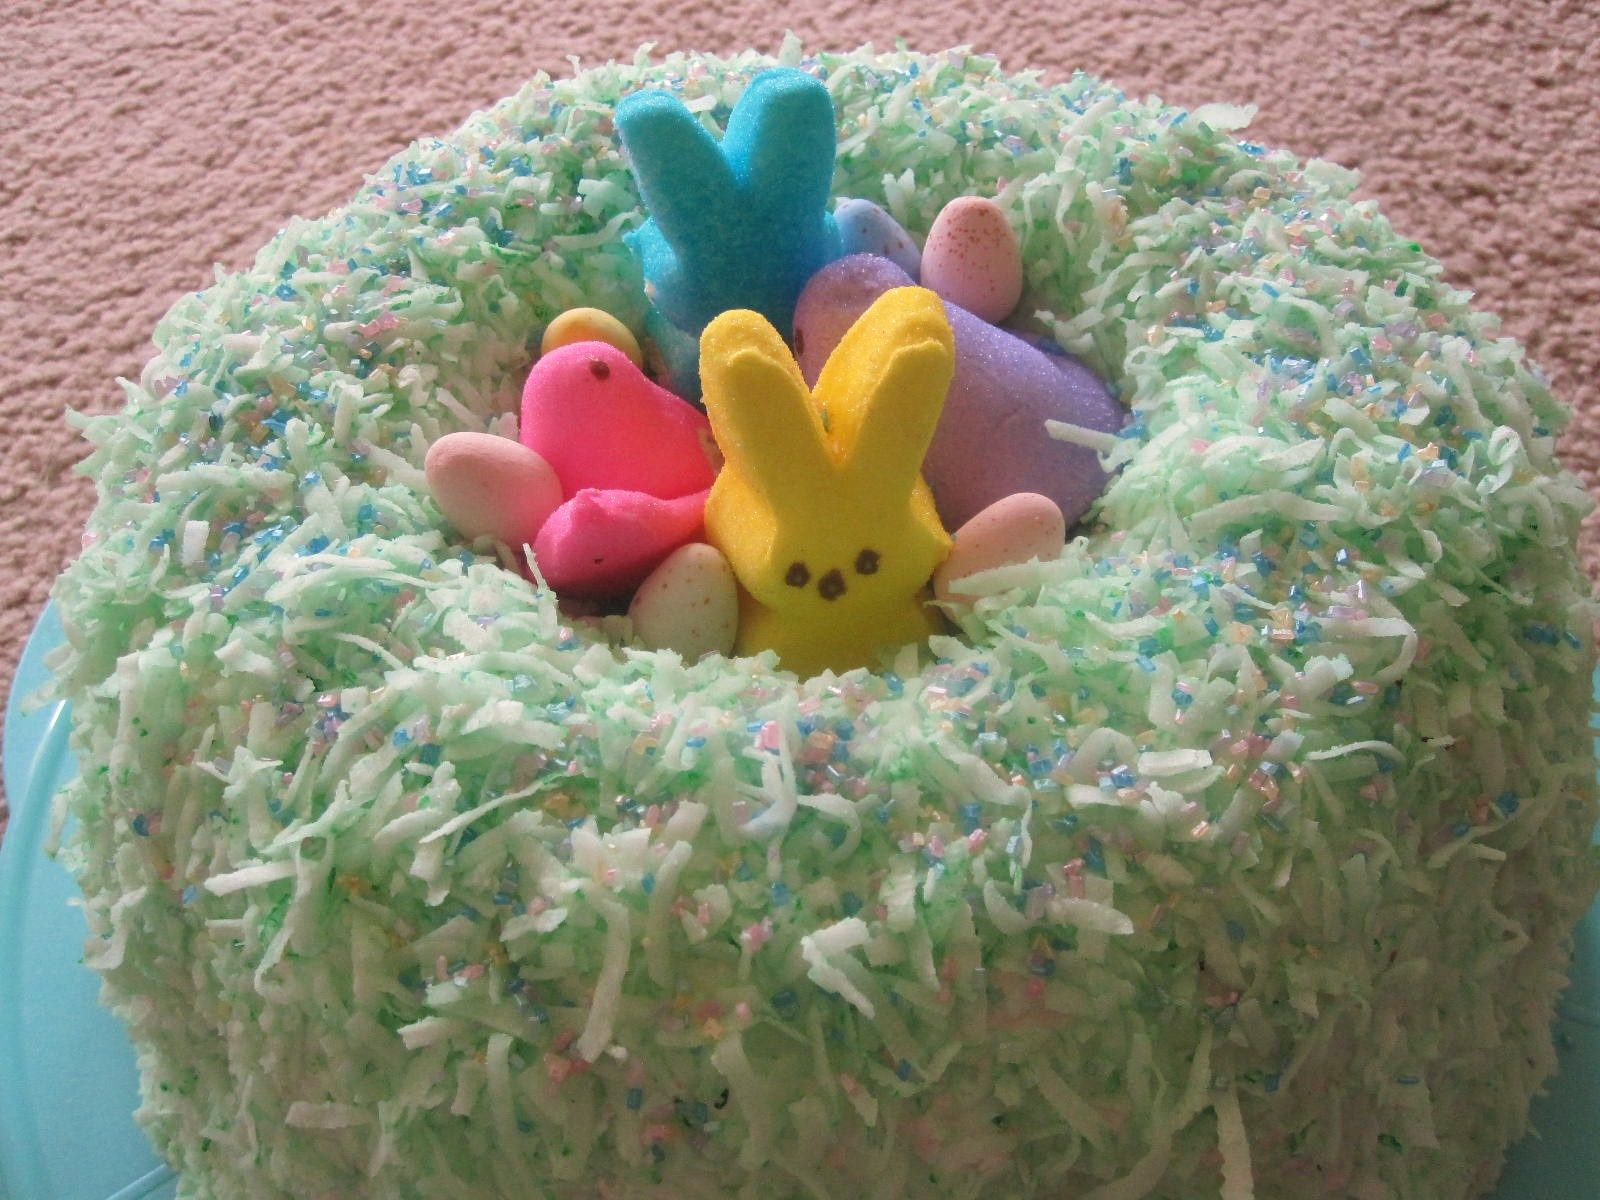 My Very Simple Easter Cake Creation 1 Make Angel Food Cake In Bundt Pan 2 Frost With Whipped Cream Or A Whi Easter Cake Easy Hoppy Easter Easter Dessert